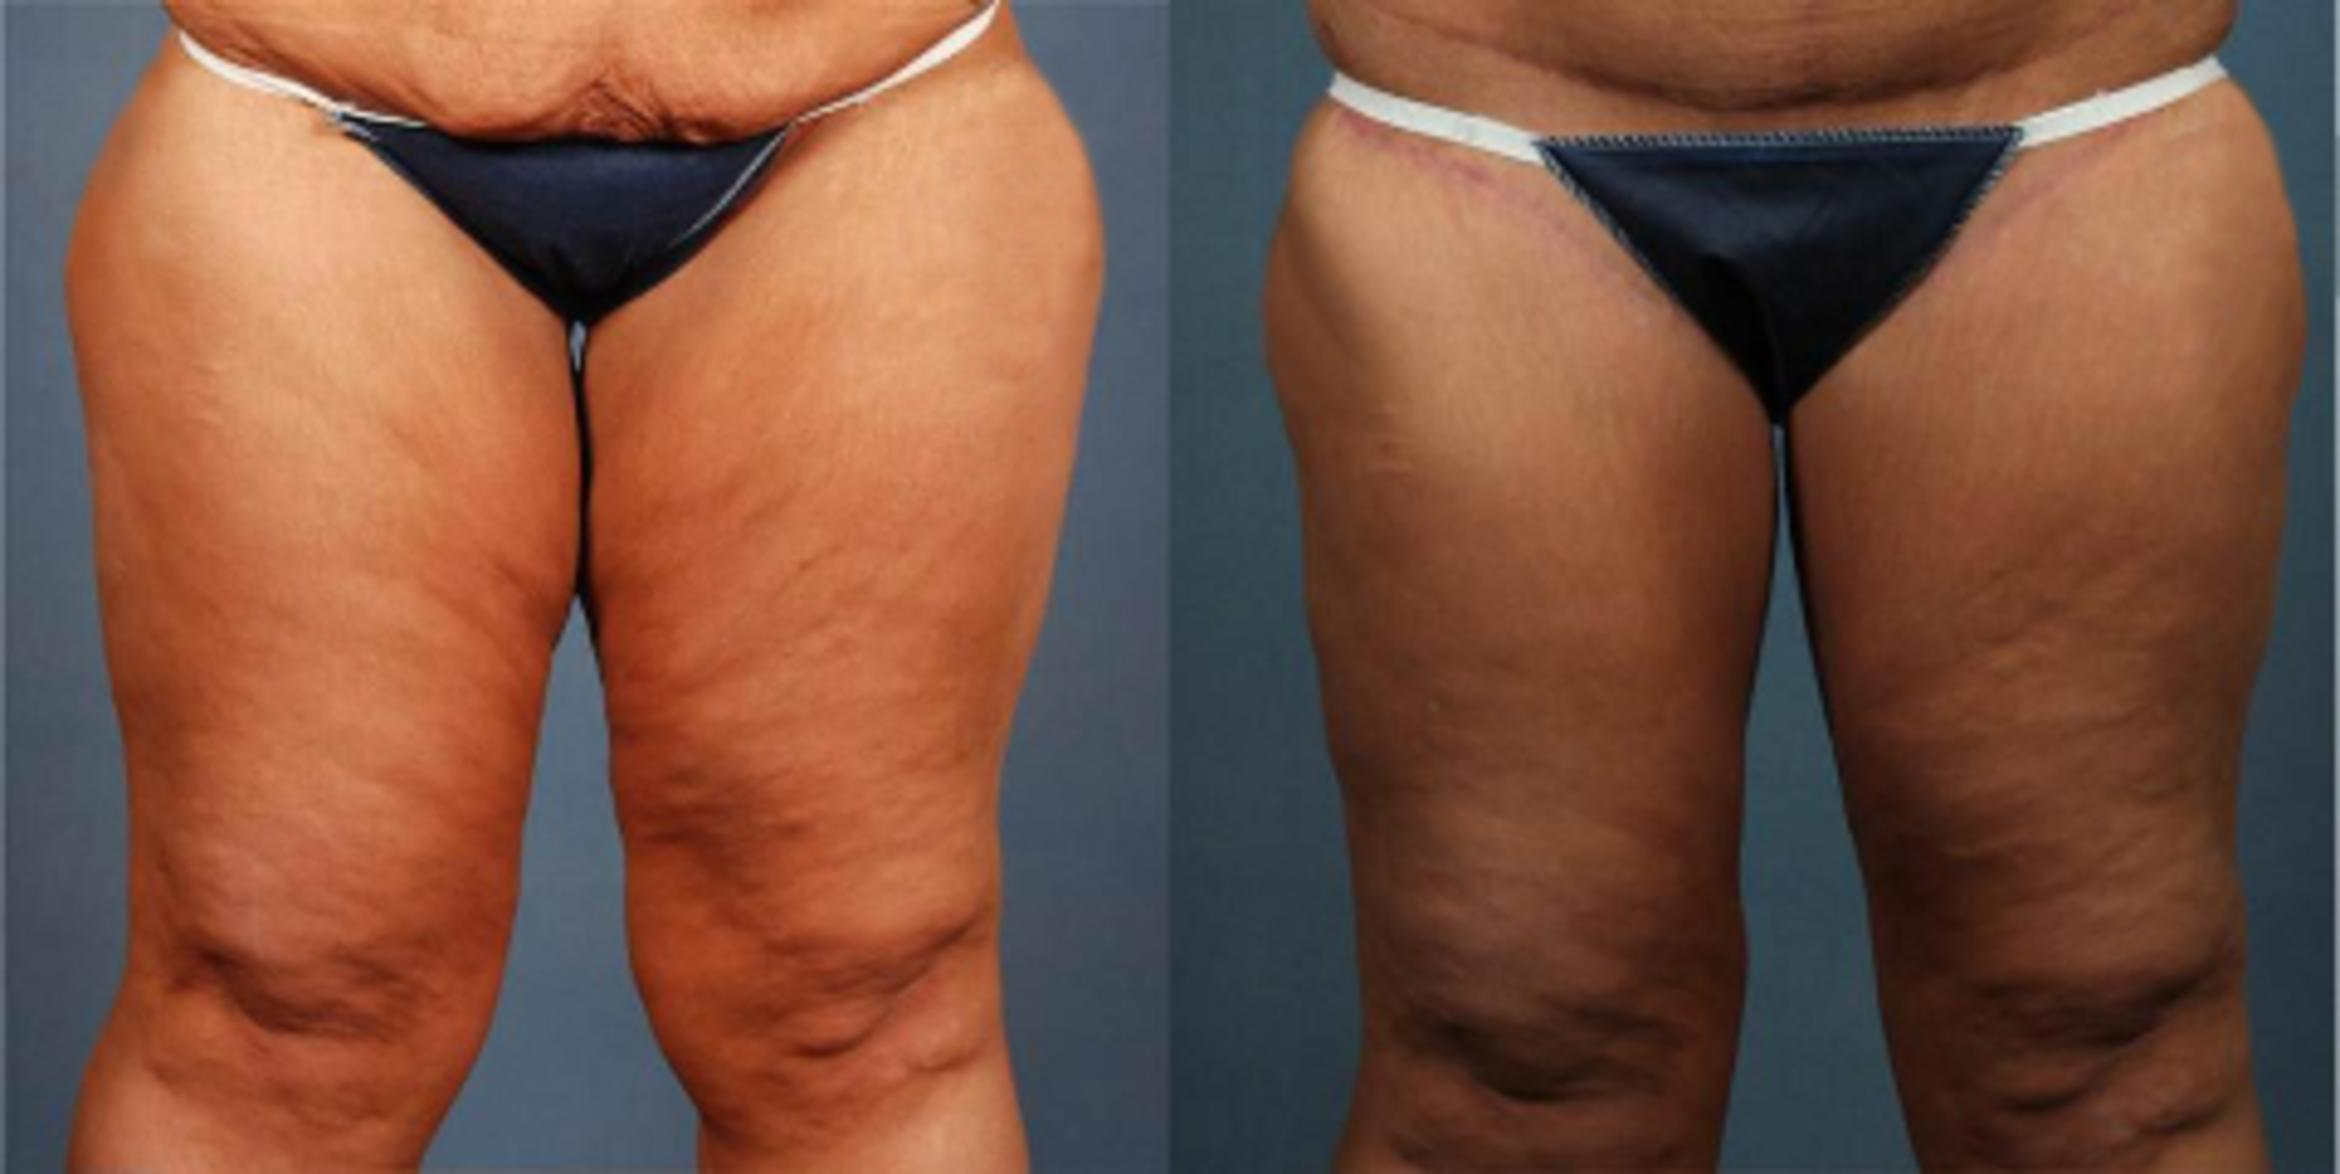 Body/Thigh Lift Case 247 Before & After View #3 | Louisville & Lexington, KY | CaloAesthetics® Plastic Surgery Center